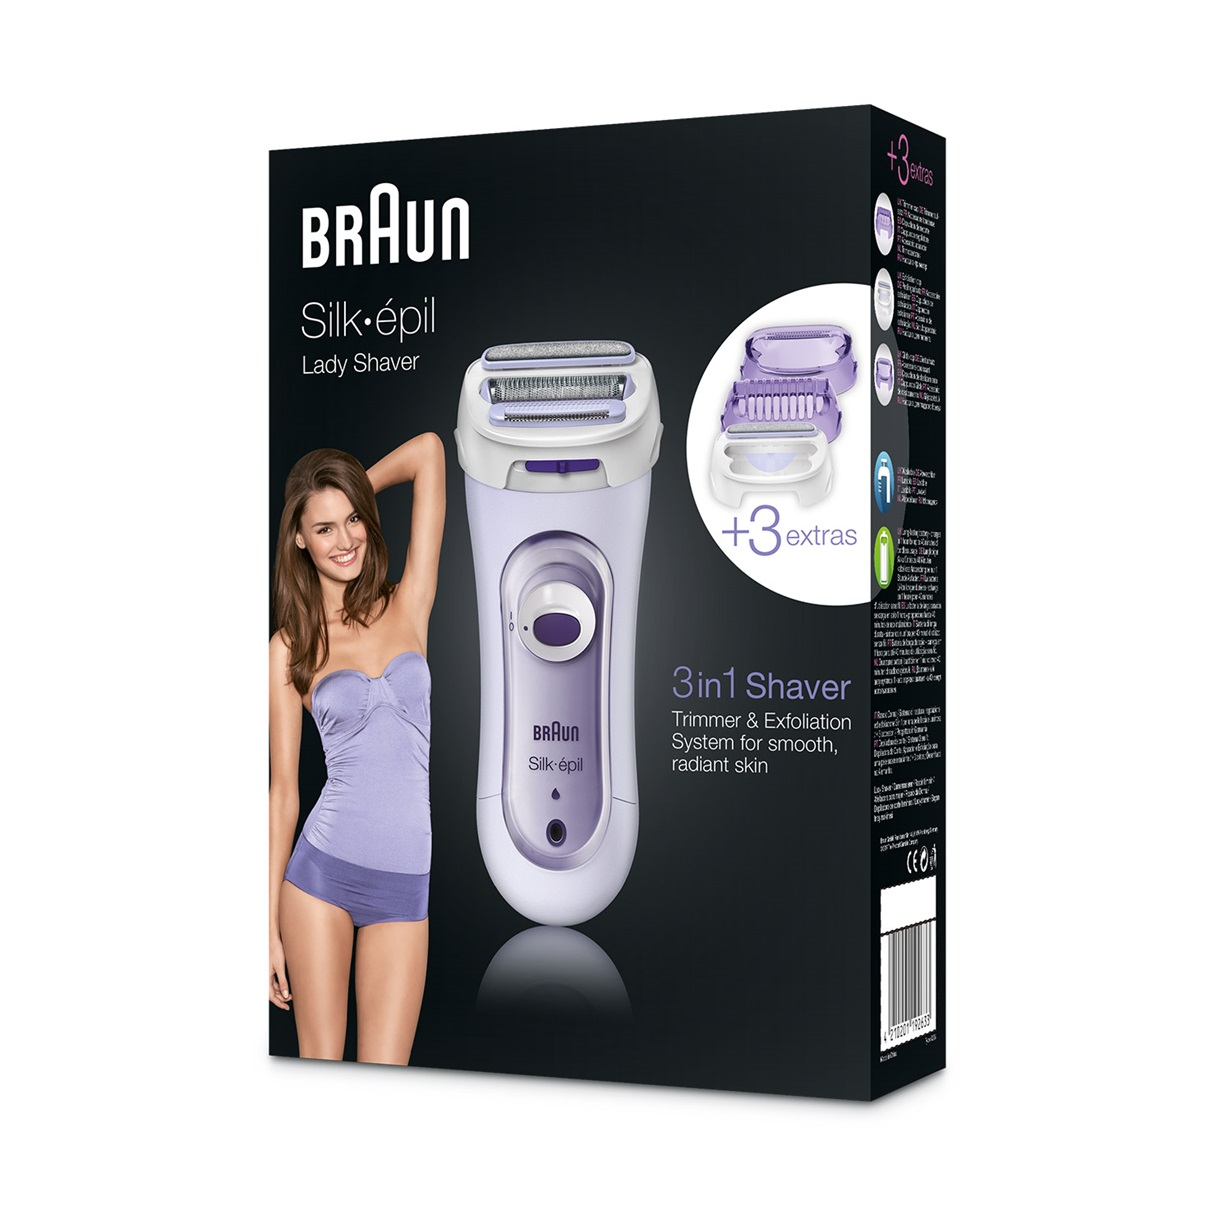 Braun Lady Shaver - 5560 Cordless Electric Shaver including Exfoliation Attachment - packaging